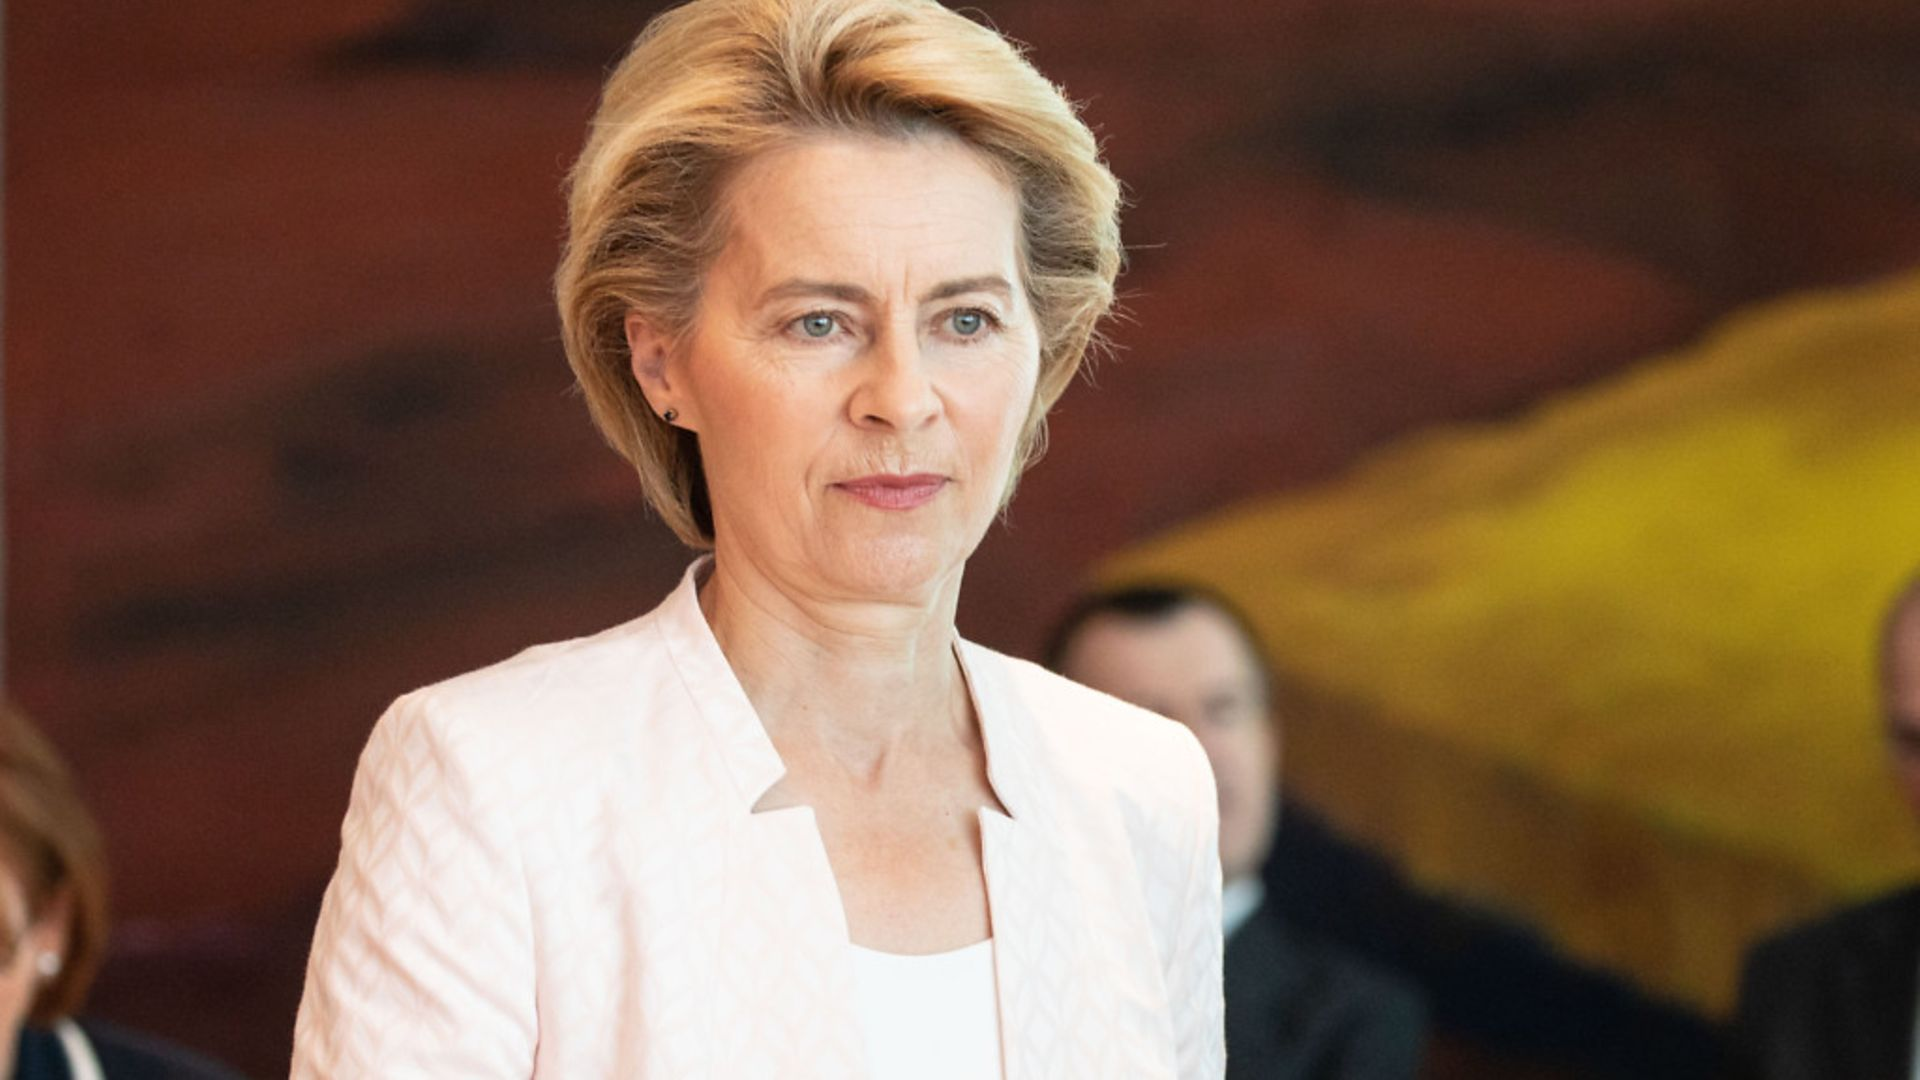 """Ursula von der Leyen said the incident made her feel """"hurt"""" and """"alone as a woman and as a European"""" - Credit: Getty Images"""